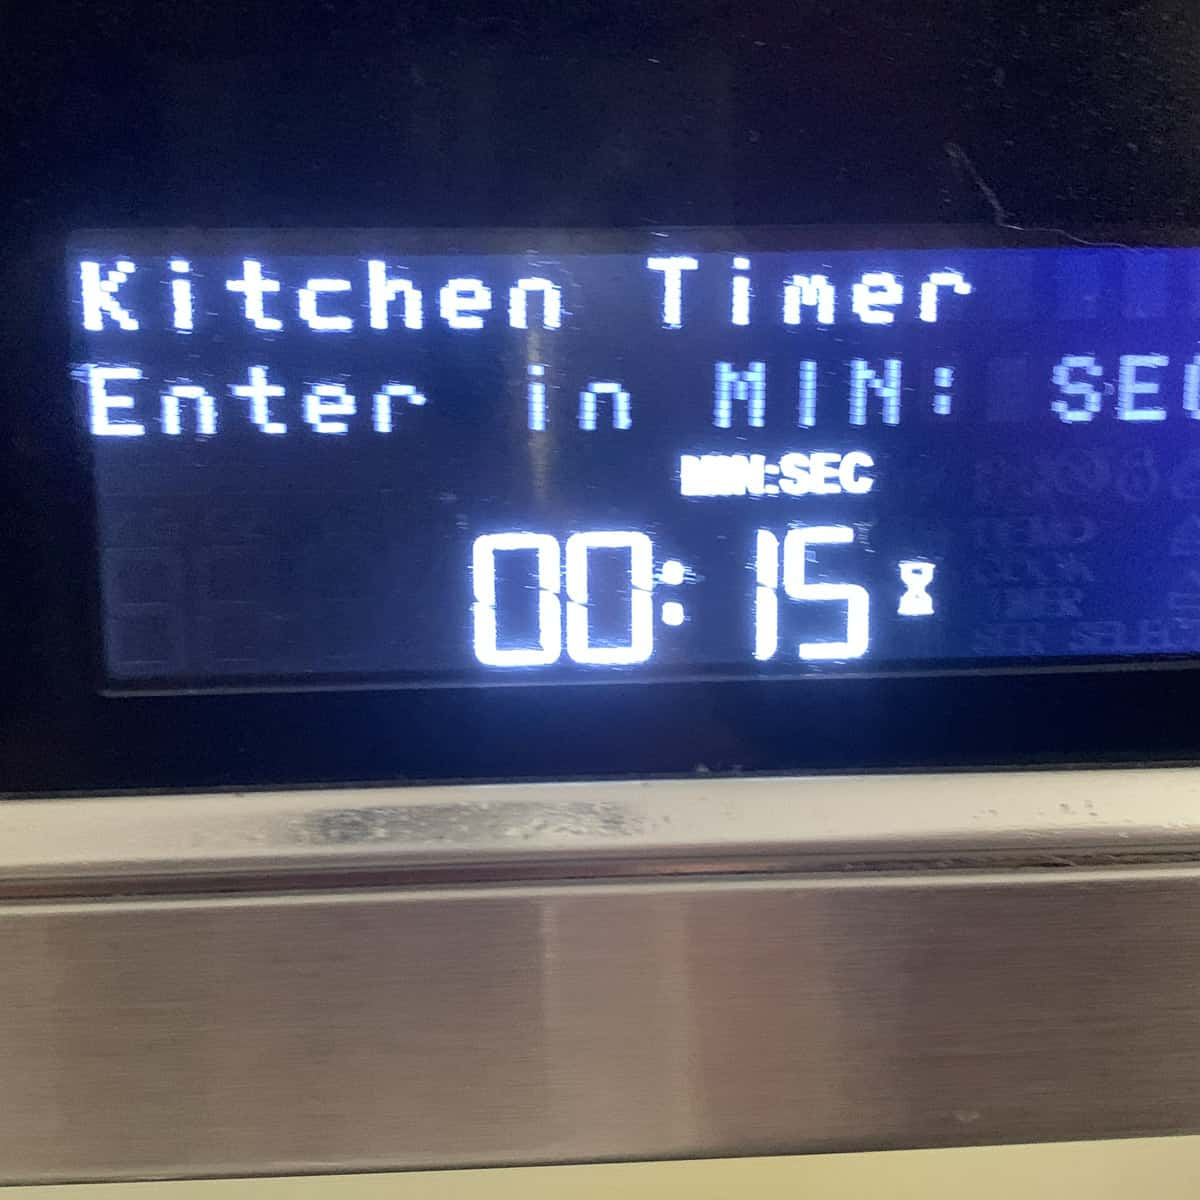 microwave oven timer set to 15 seconds